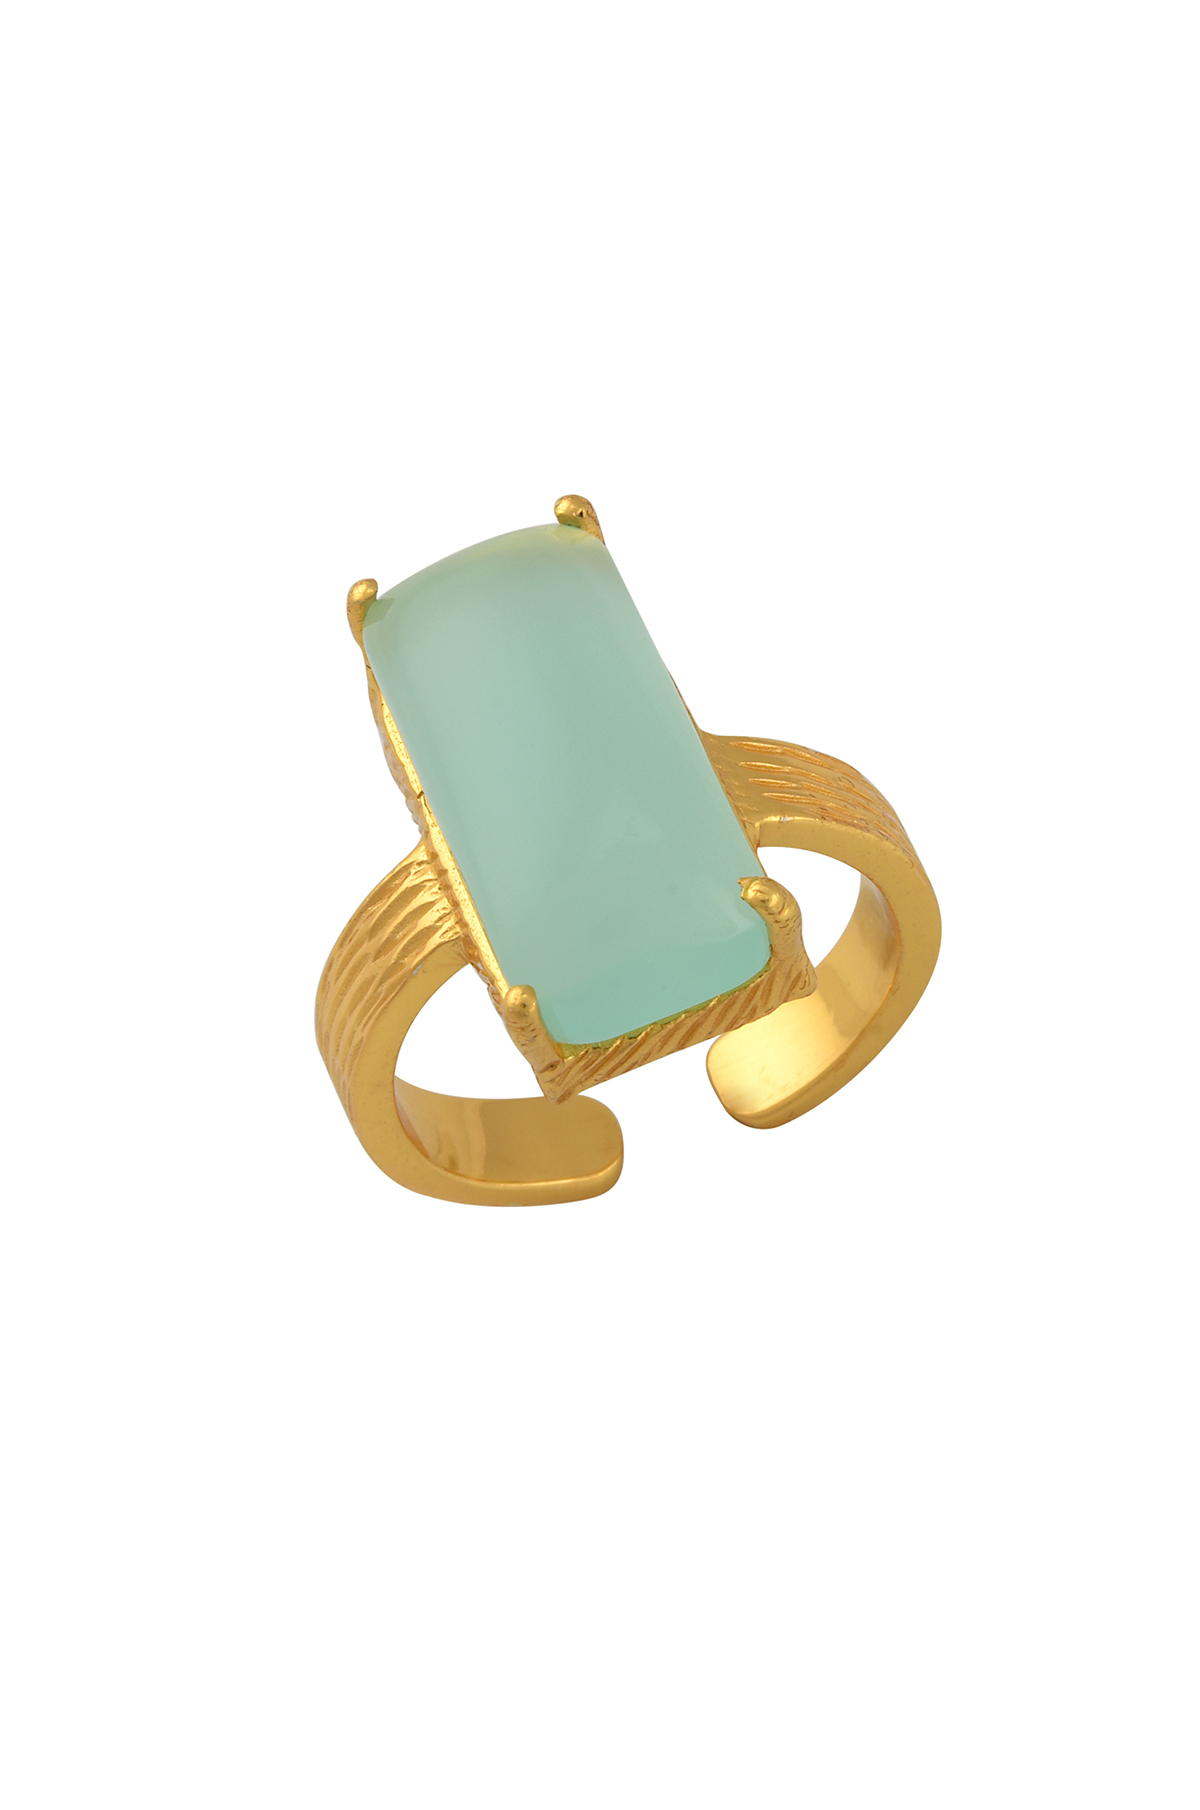 Gold Plated Textured Green Glass Rectangle Ring